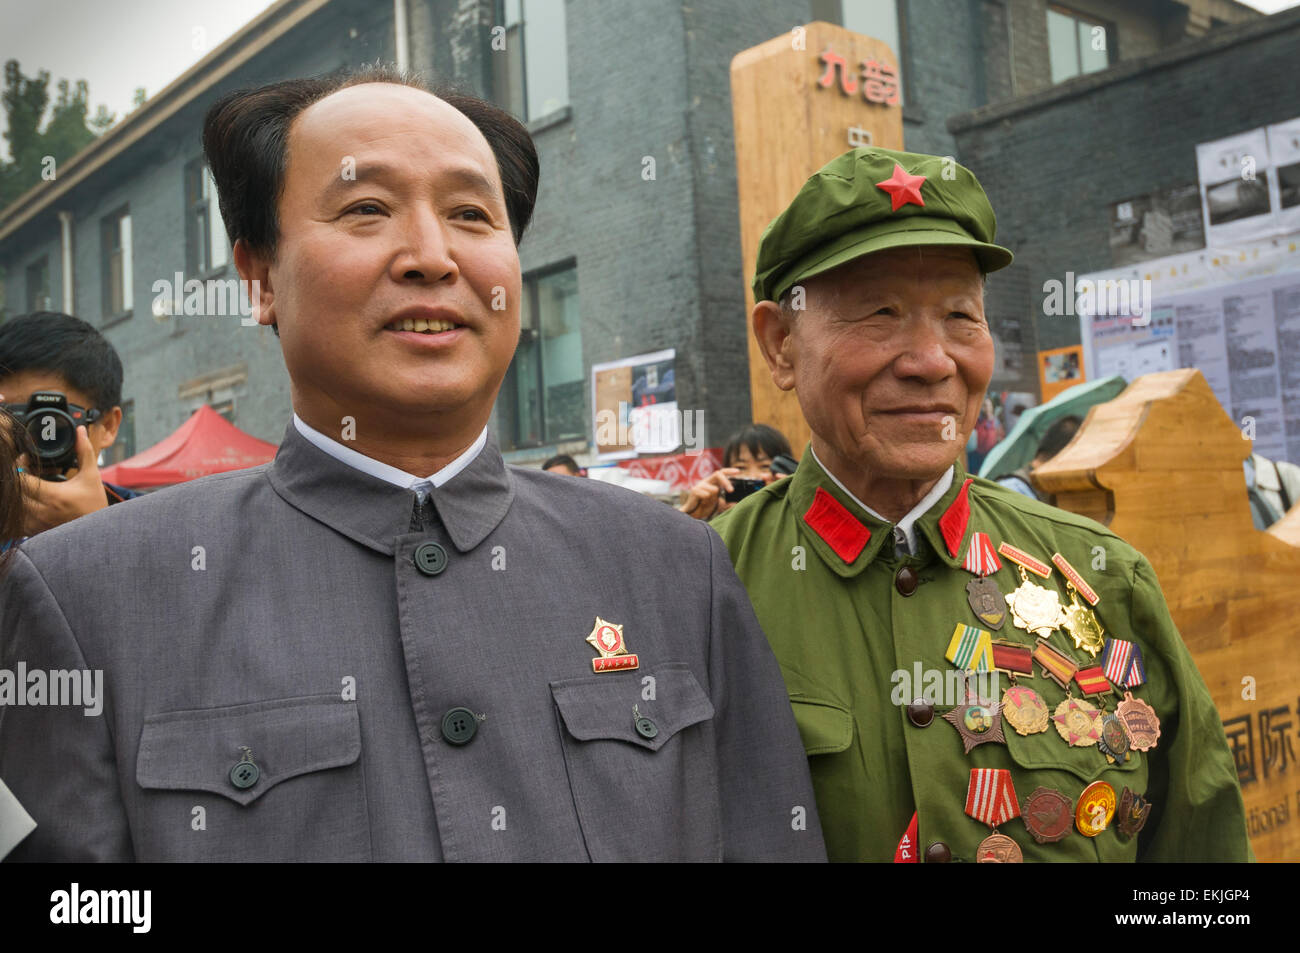 A Mao Zedong look alike and veteran army soldier visit a festival in the ancient walled city of Pingyao, Shanxi - Stock Image